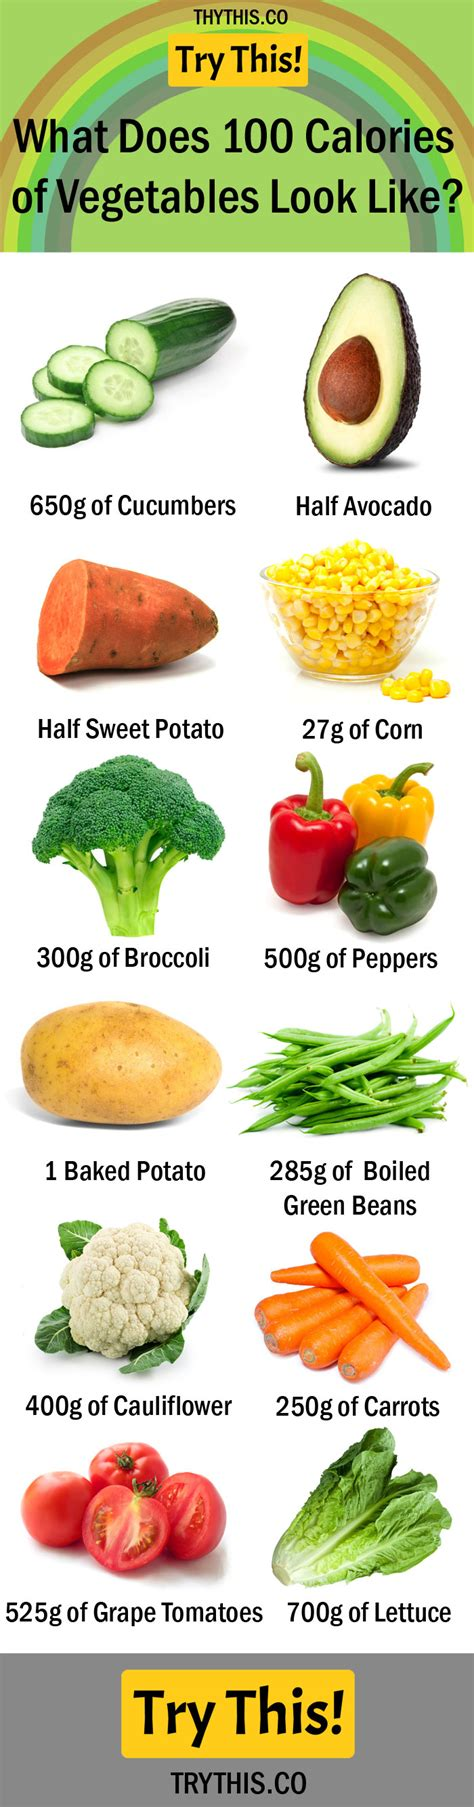 What Does 100 Calories Look Like Food Tips Trythis